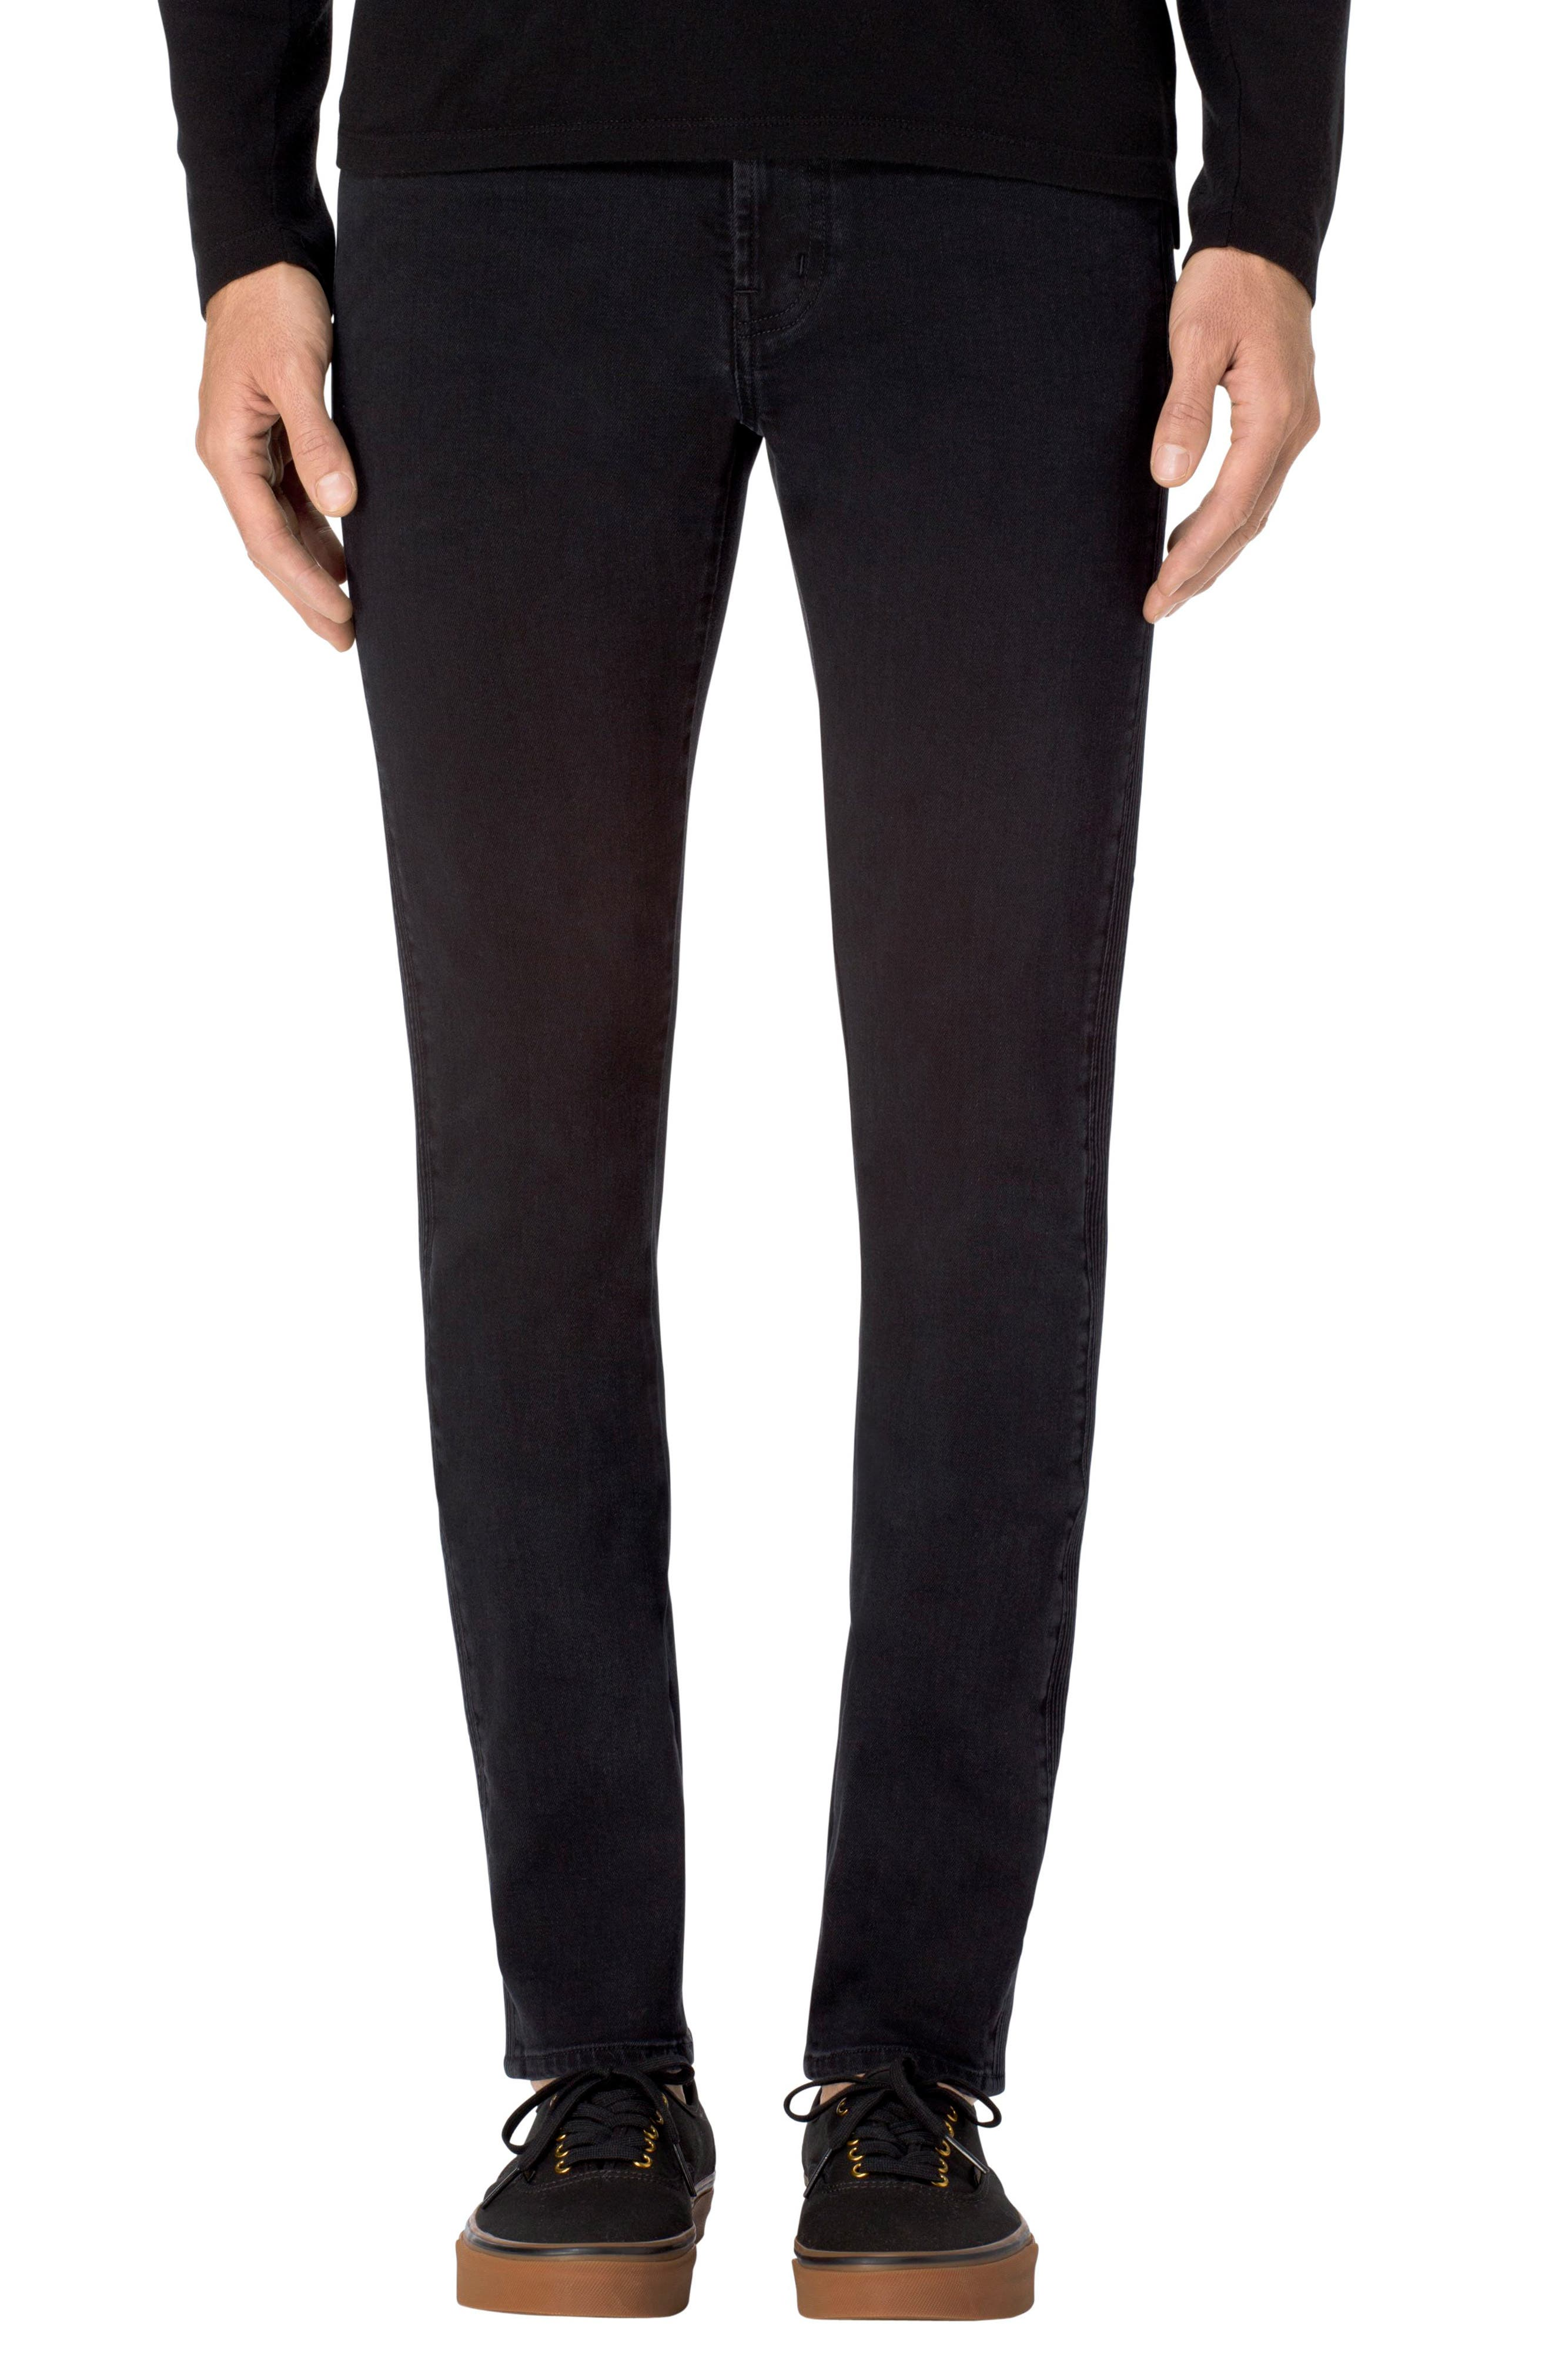 Alternate Image 1 Selected - J Brand Parallax Moto Skinny Fit Jeans (Hype)